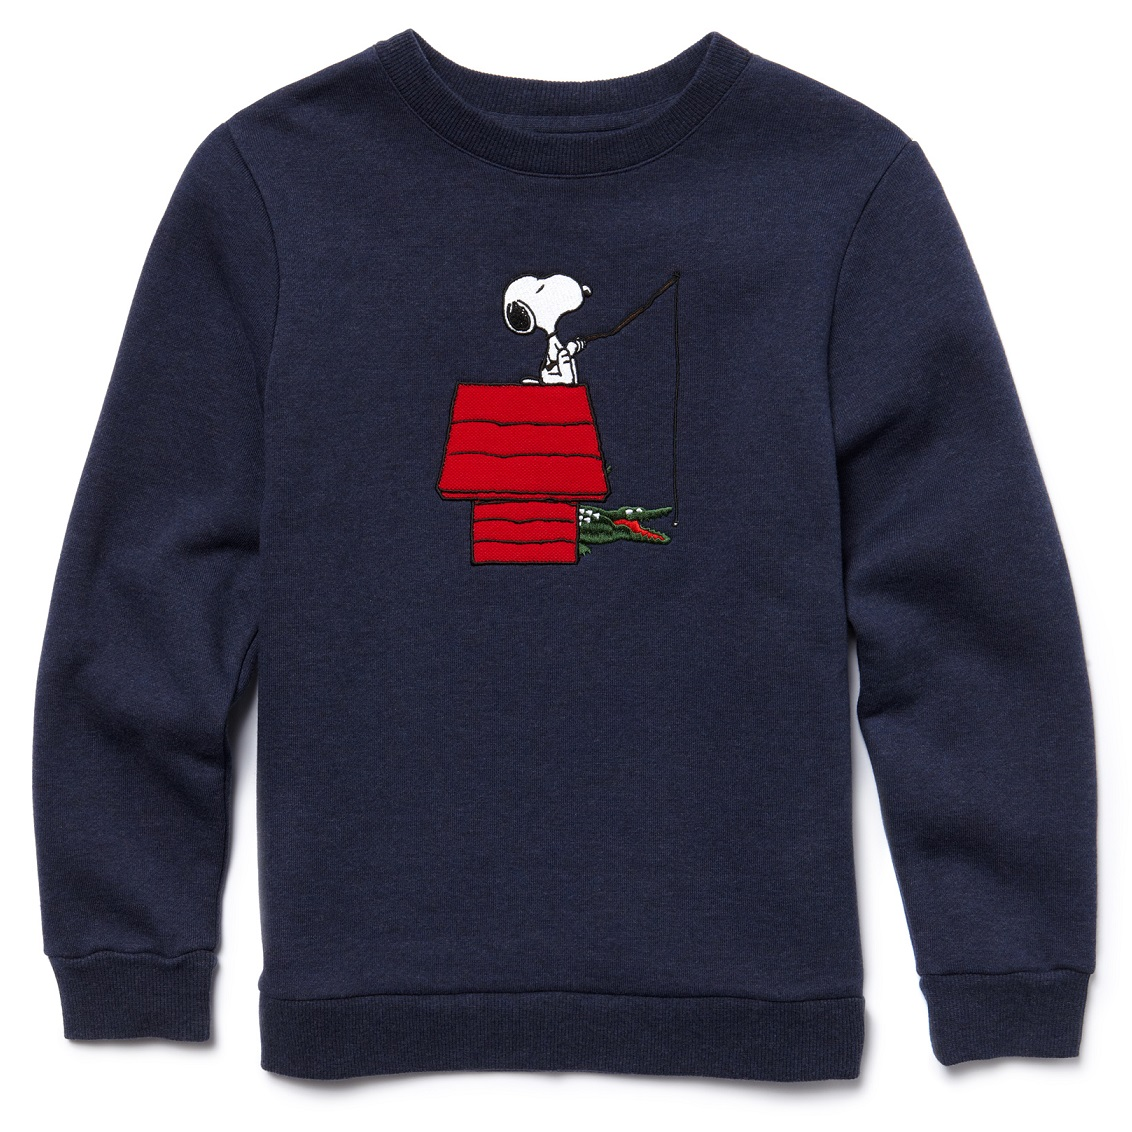 260bea66 Peanuts x Lacoste 2015 Polo Collection - Snoopy · The T-Shirt ...